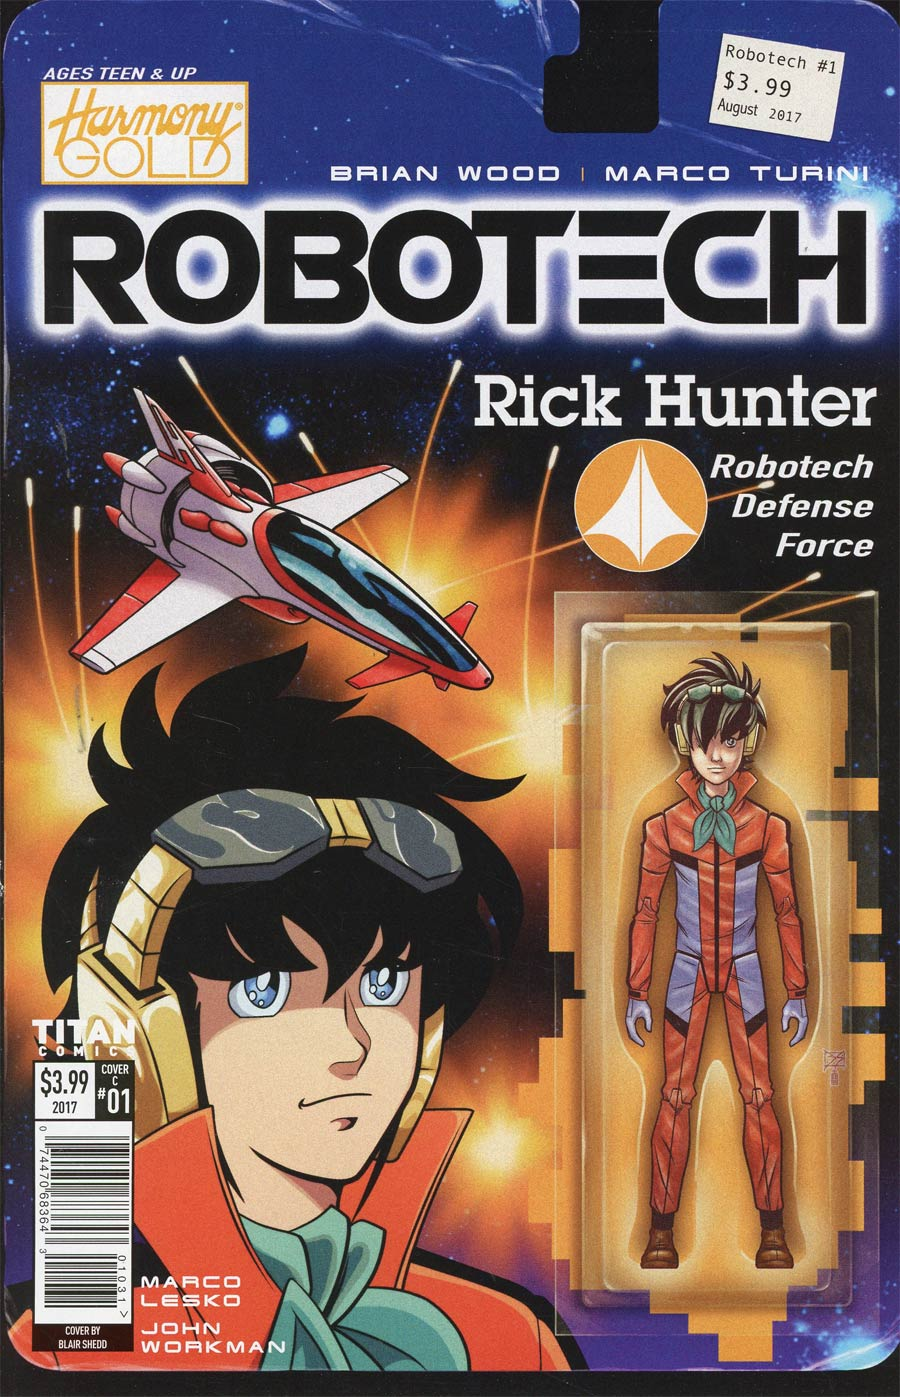 Robotech Vol 3 #1 Cover C Variant Blair Shedd Action Figure Cover